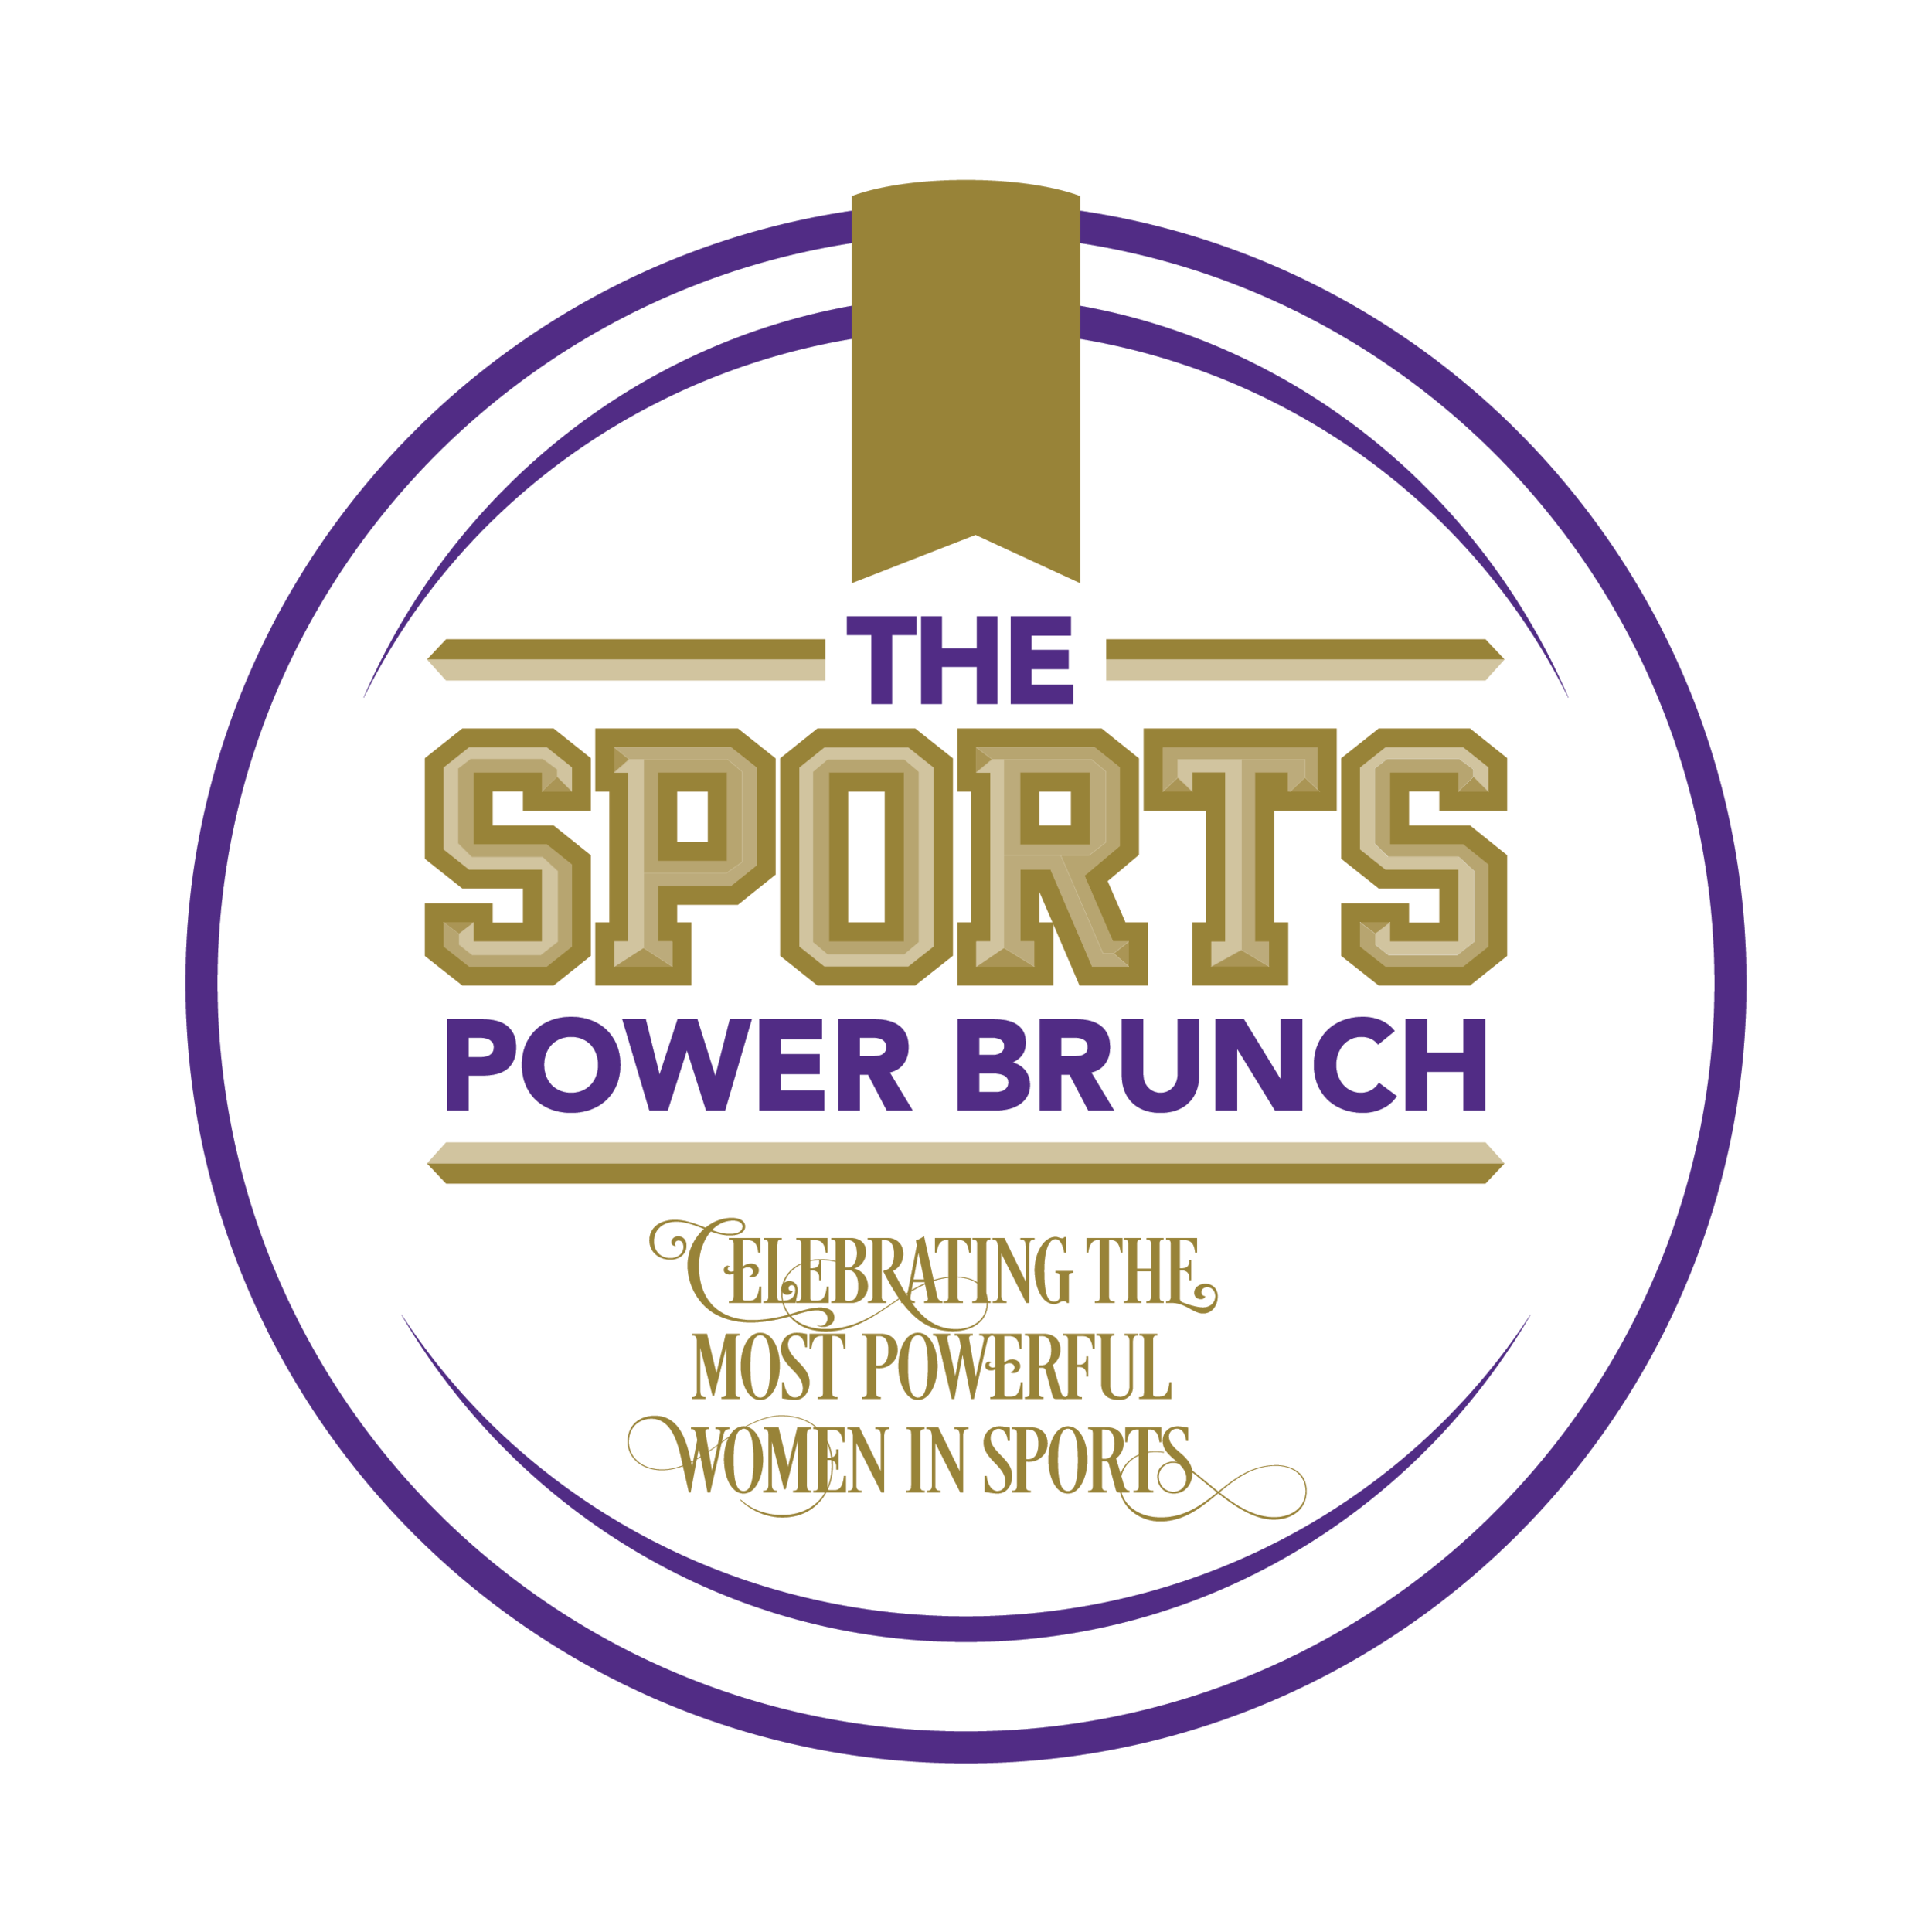 Sports Power Brunch Official Logo Png.png